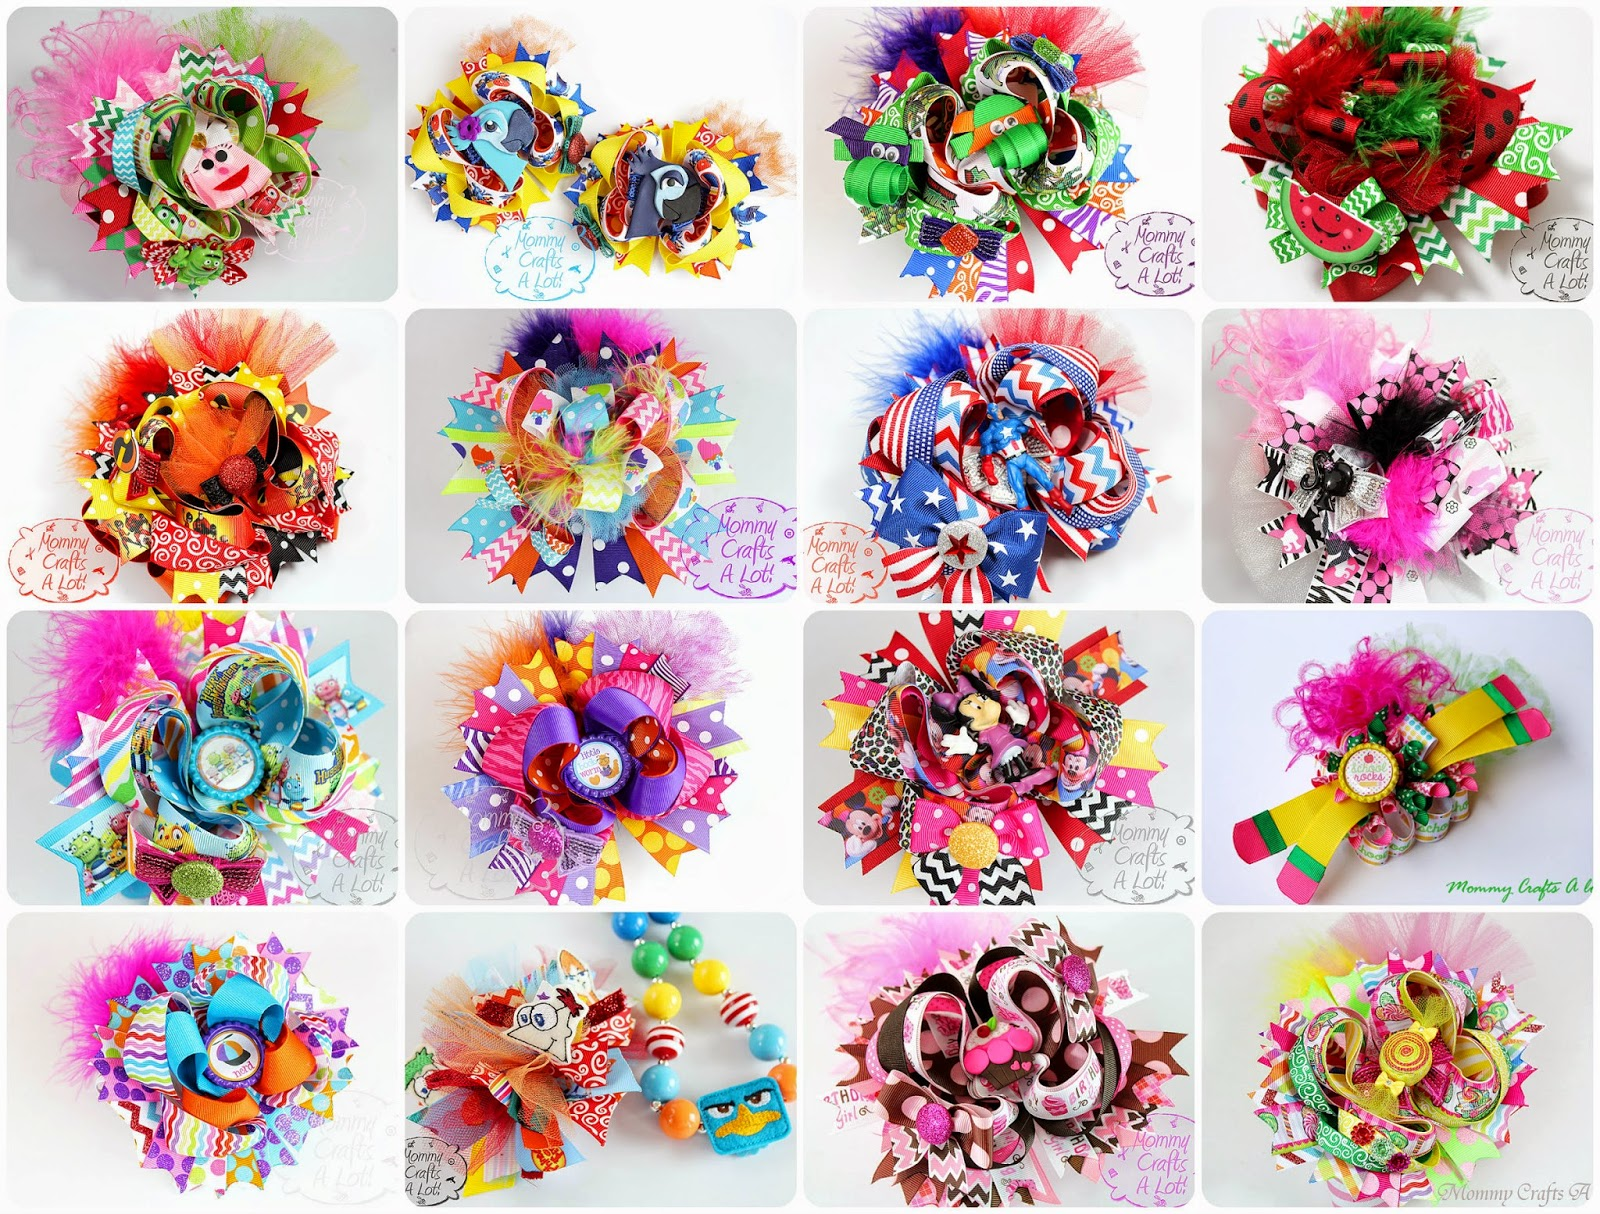 Mommycraftsalot hairbow tutorials how to make hairbows hairbow tutorials how to make hairbows baditri Image collections